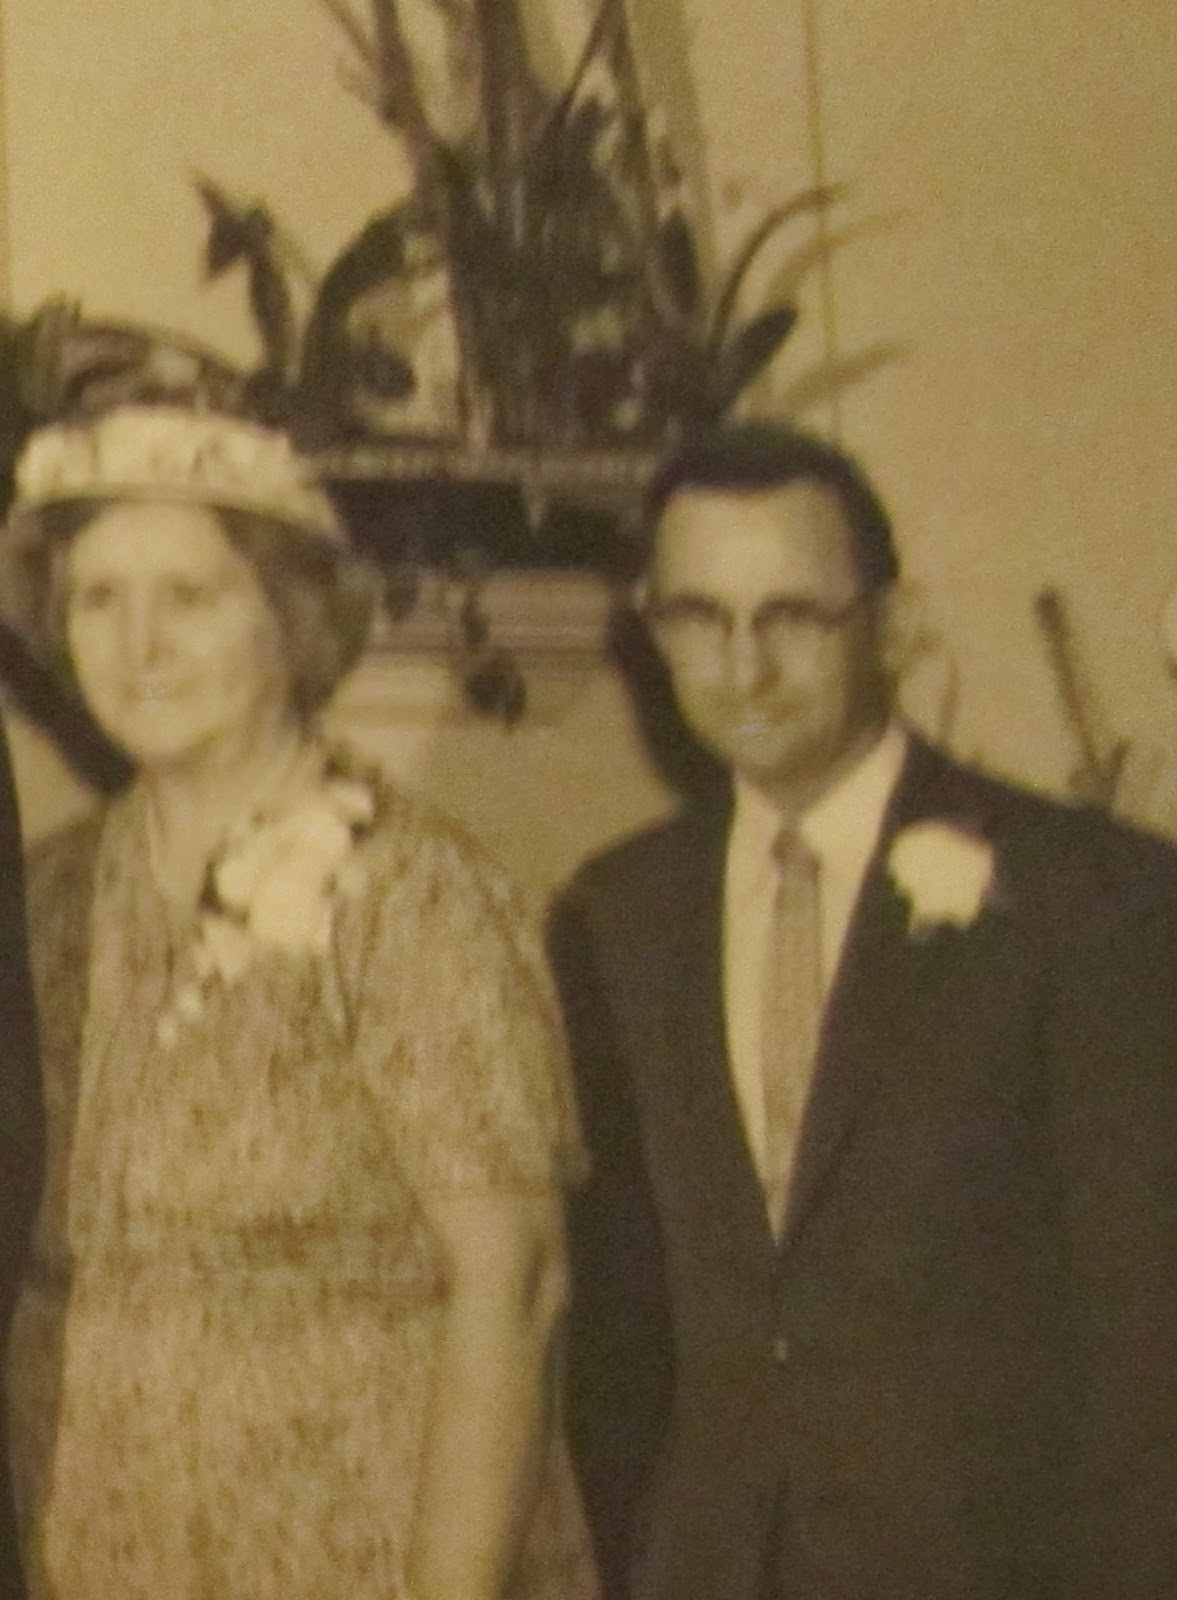 Climbing My Family Tree: Carl & Anna at my father's wedding - cropped from couple & parent's photo